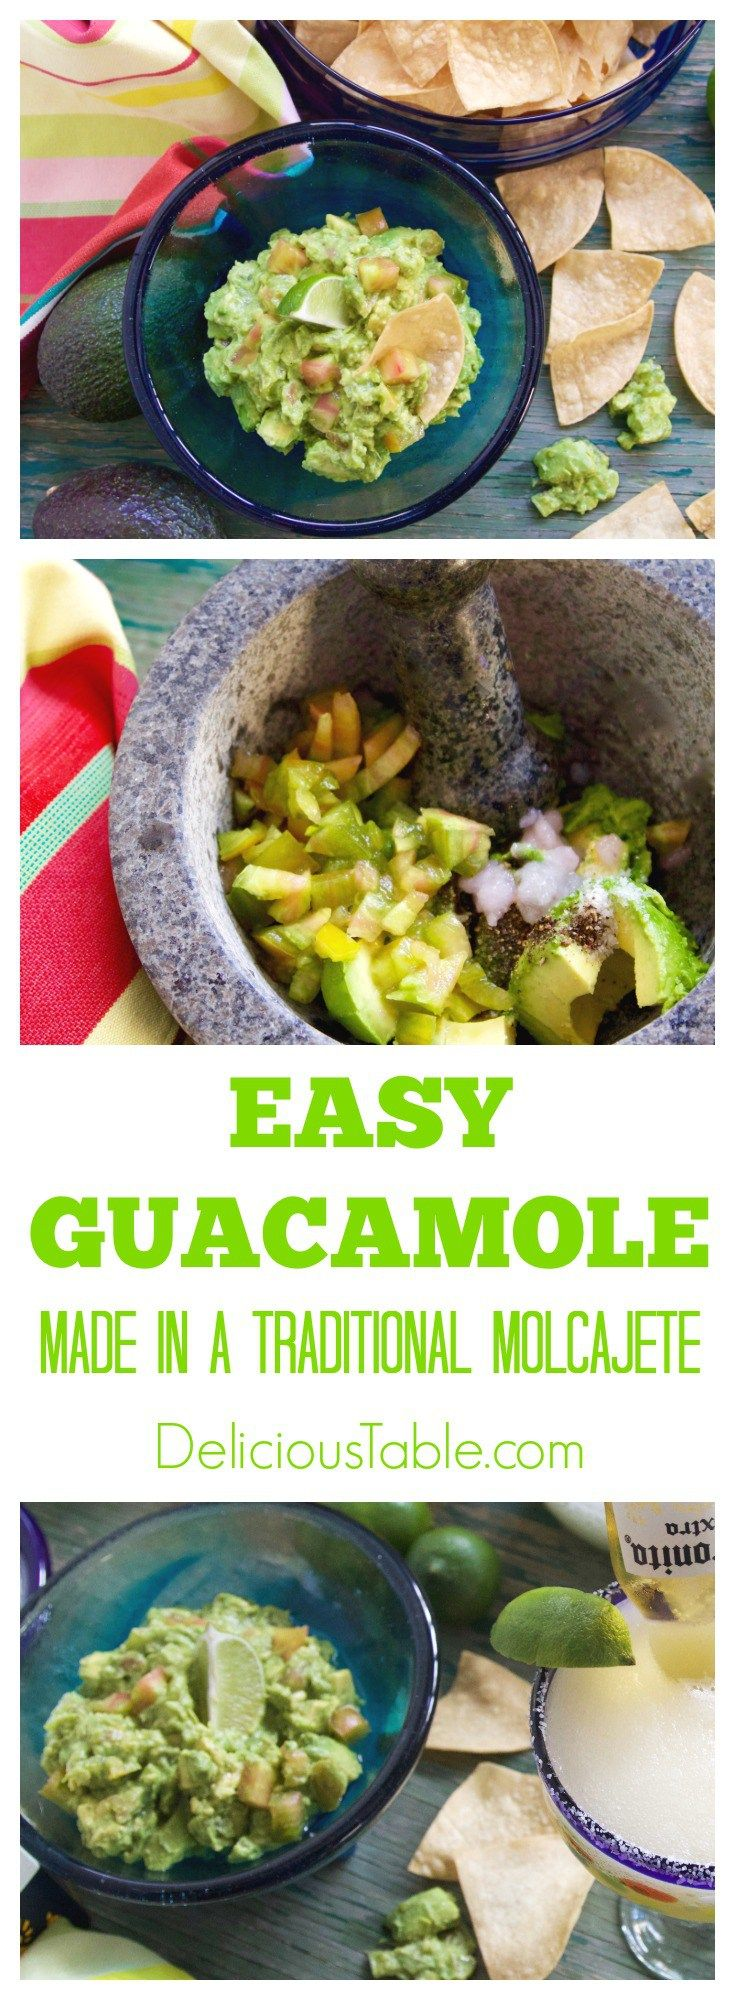 Make Easy Guacamole in a traditional molcajete (or a bowl with forks) and serve with salty crunchy tortilla chips. Great on tacos, enchiladas, and taquitos!